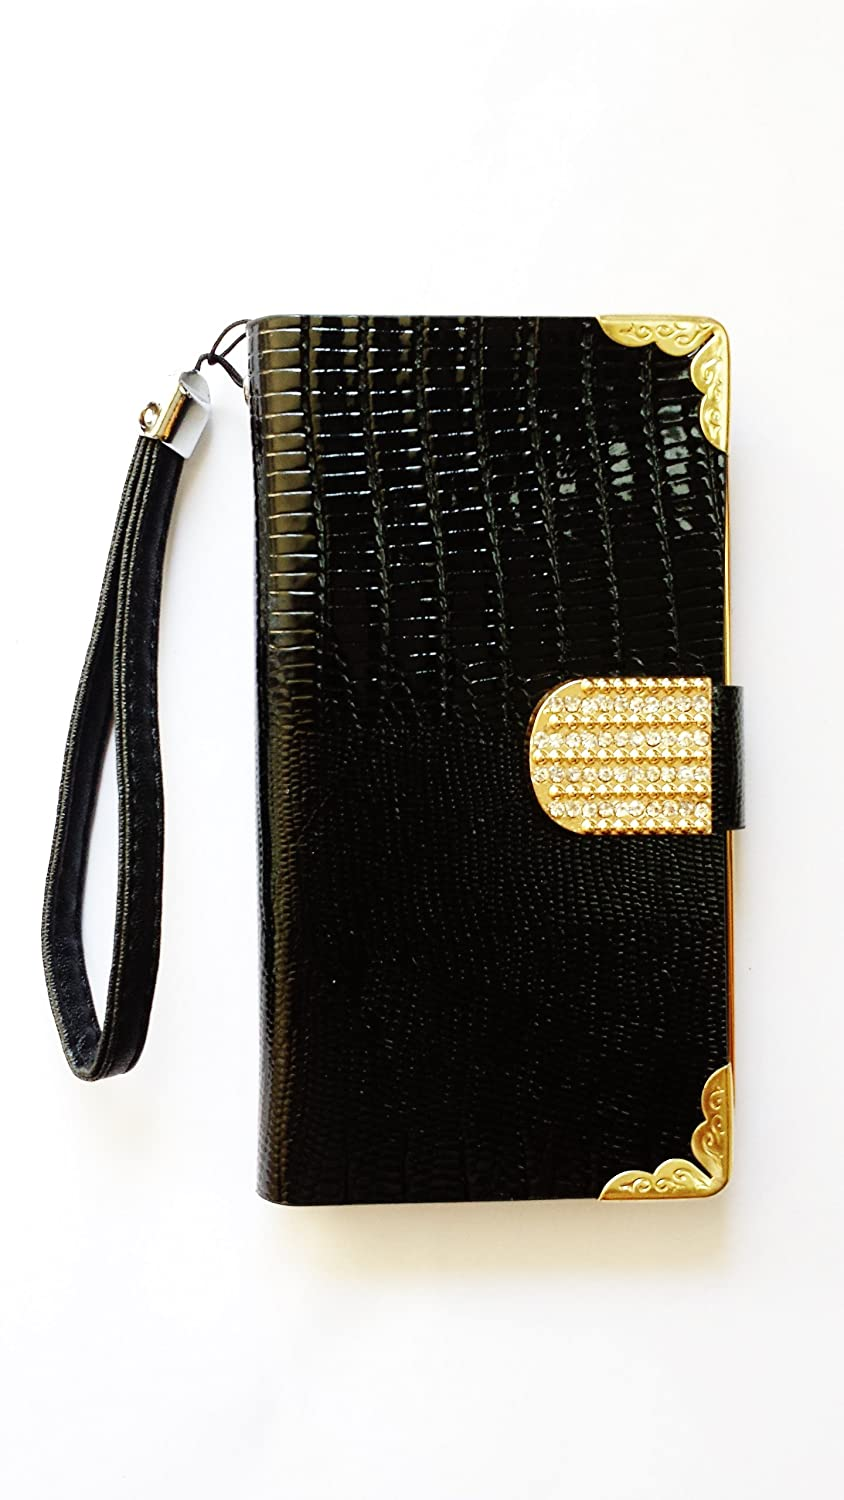 Galaxy S5 Case- Premium PU Leather Wallet Case Cover with Rhinestone